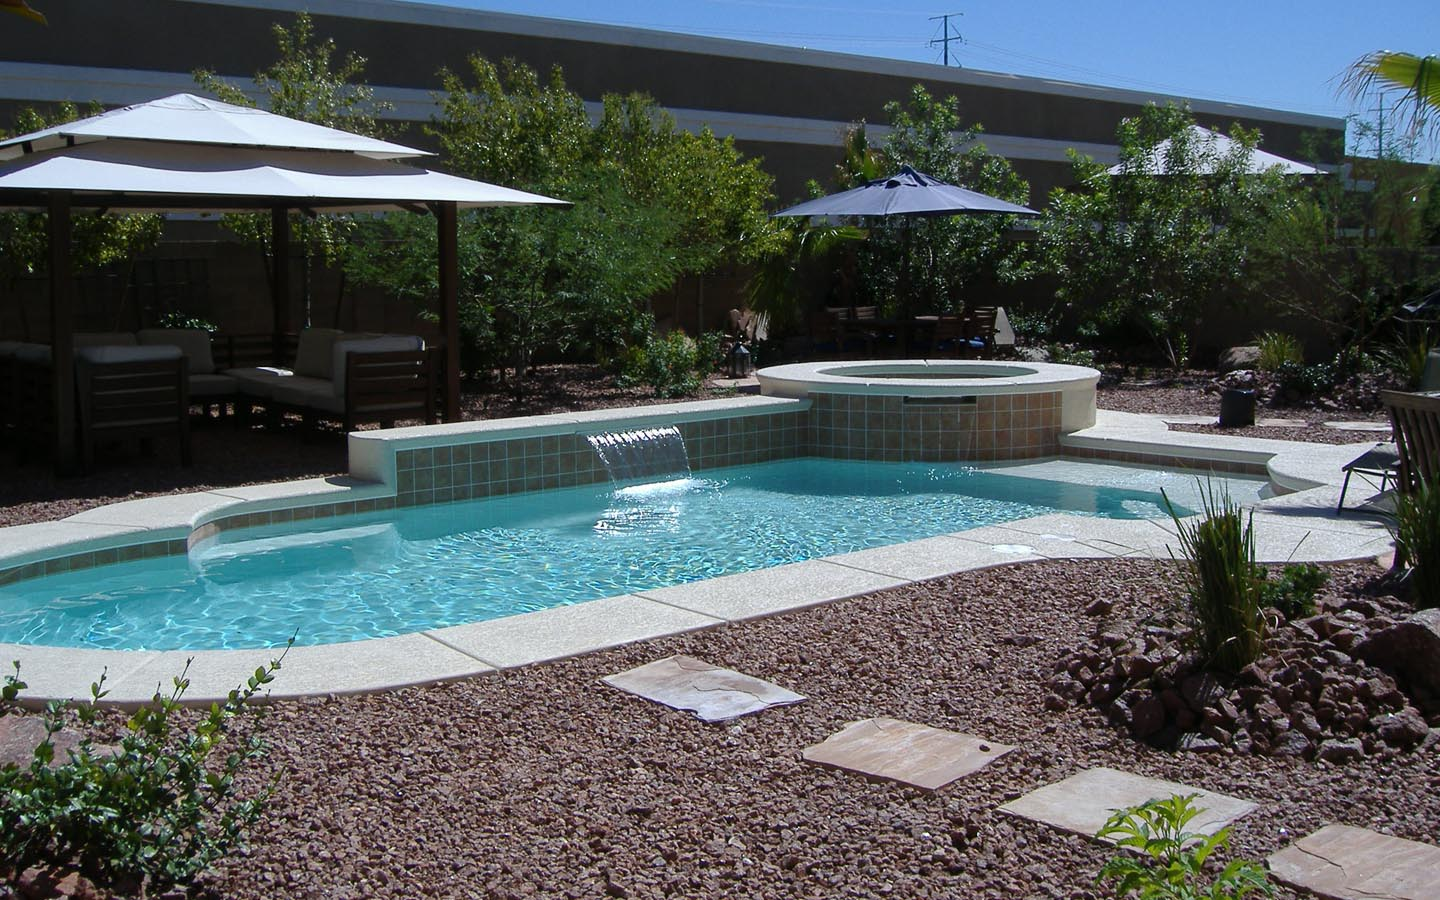 Design Landscape Around Pool desert landscaping around pool design and ideas pool